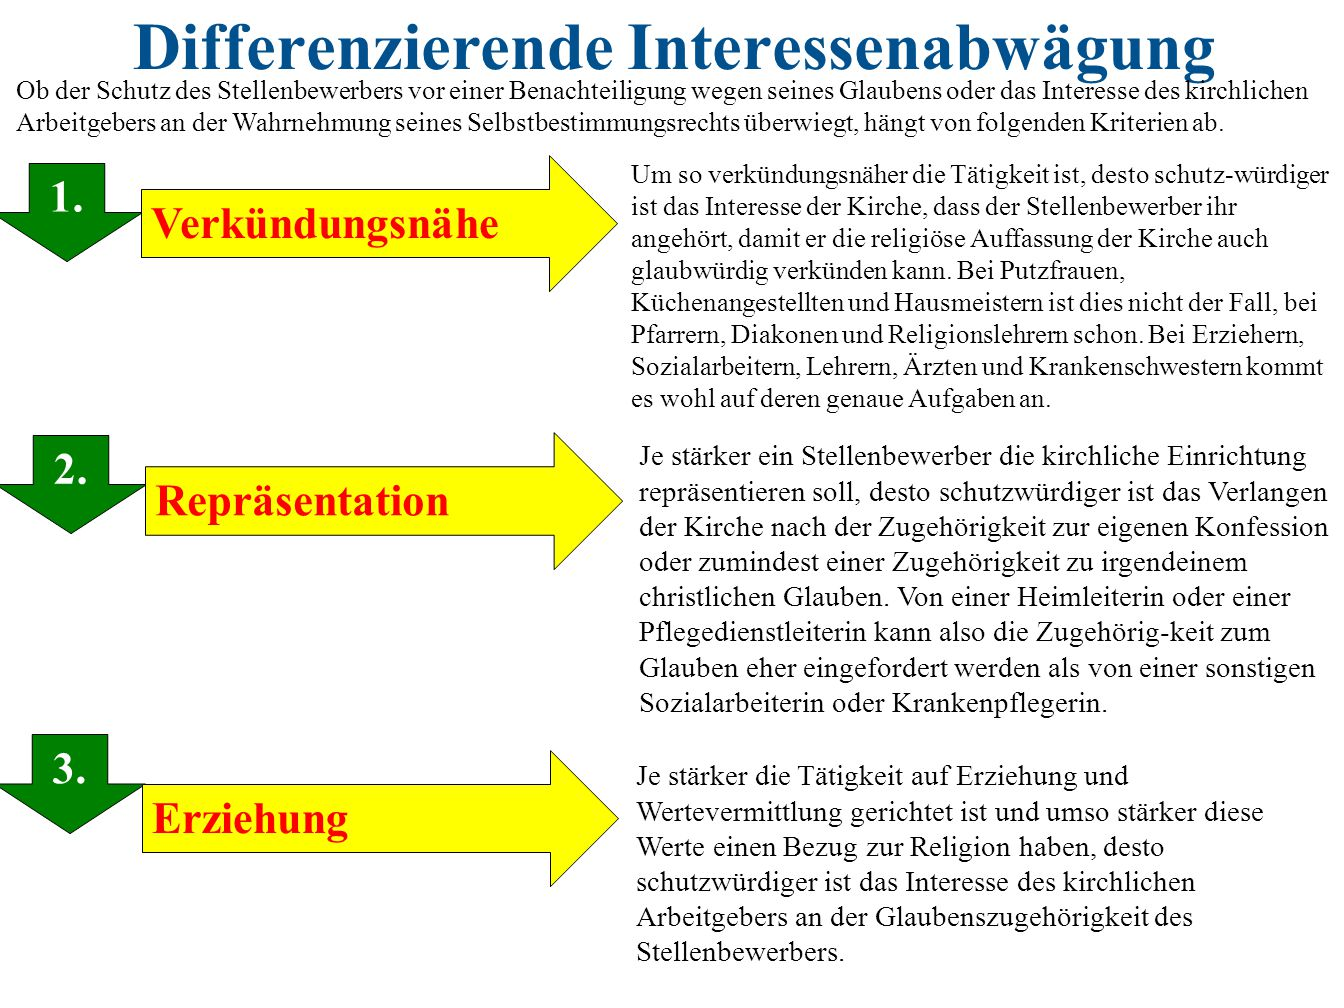 Differenzierende Interessenabwägung